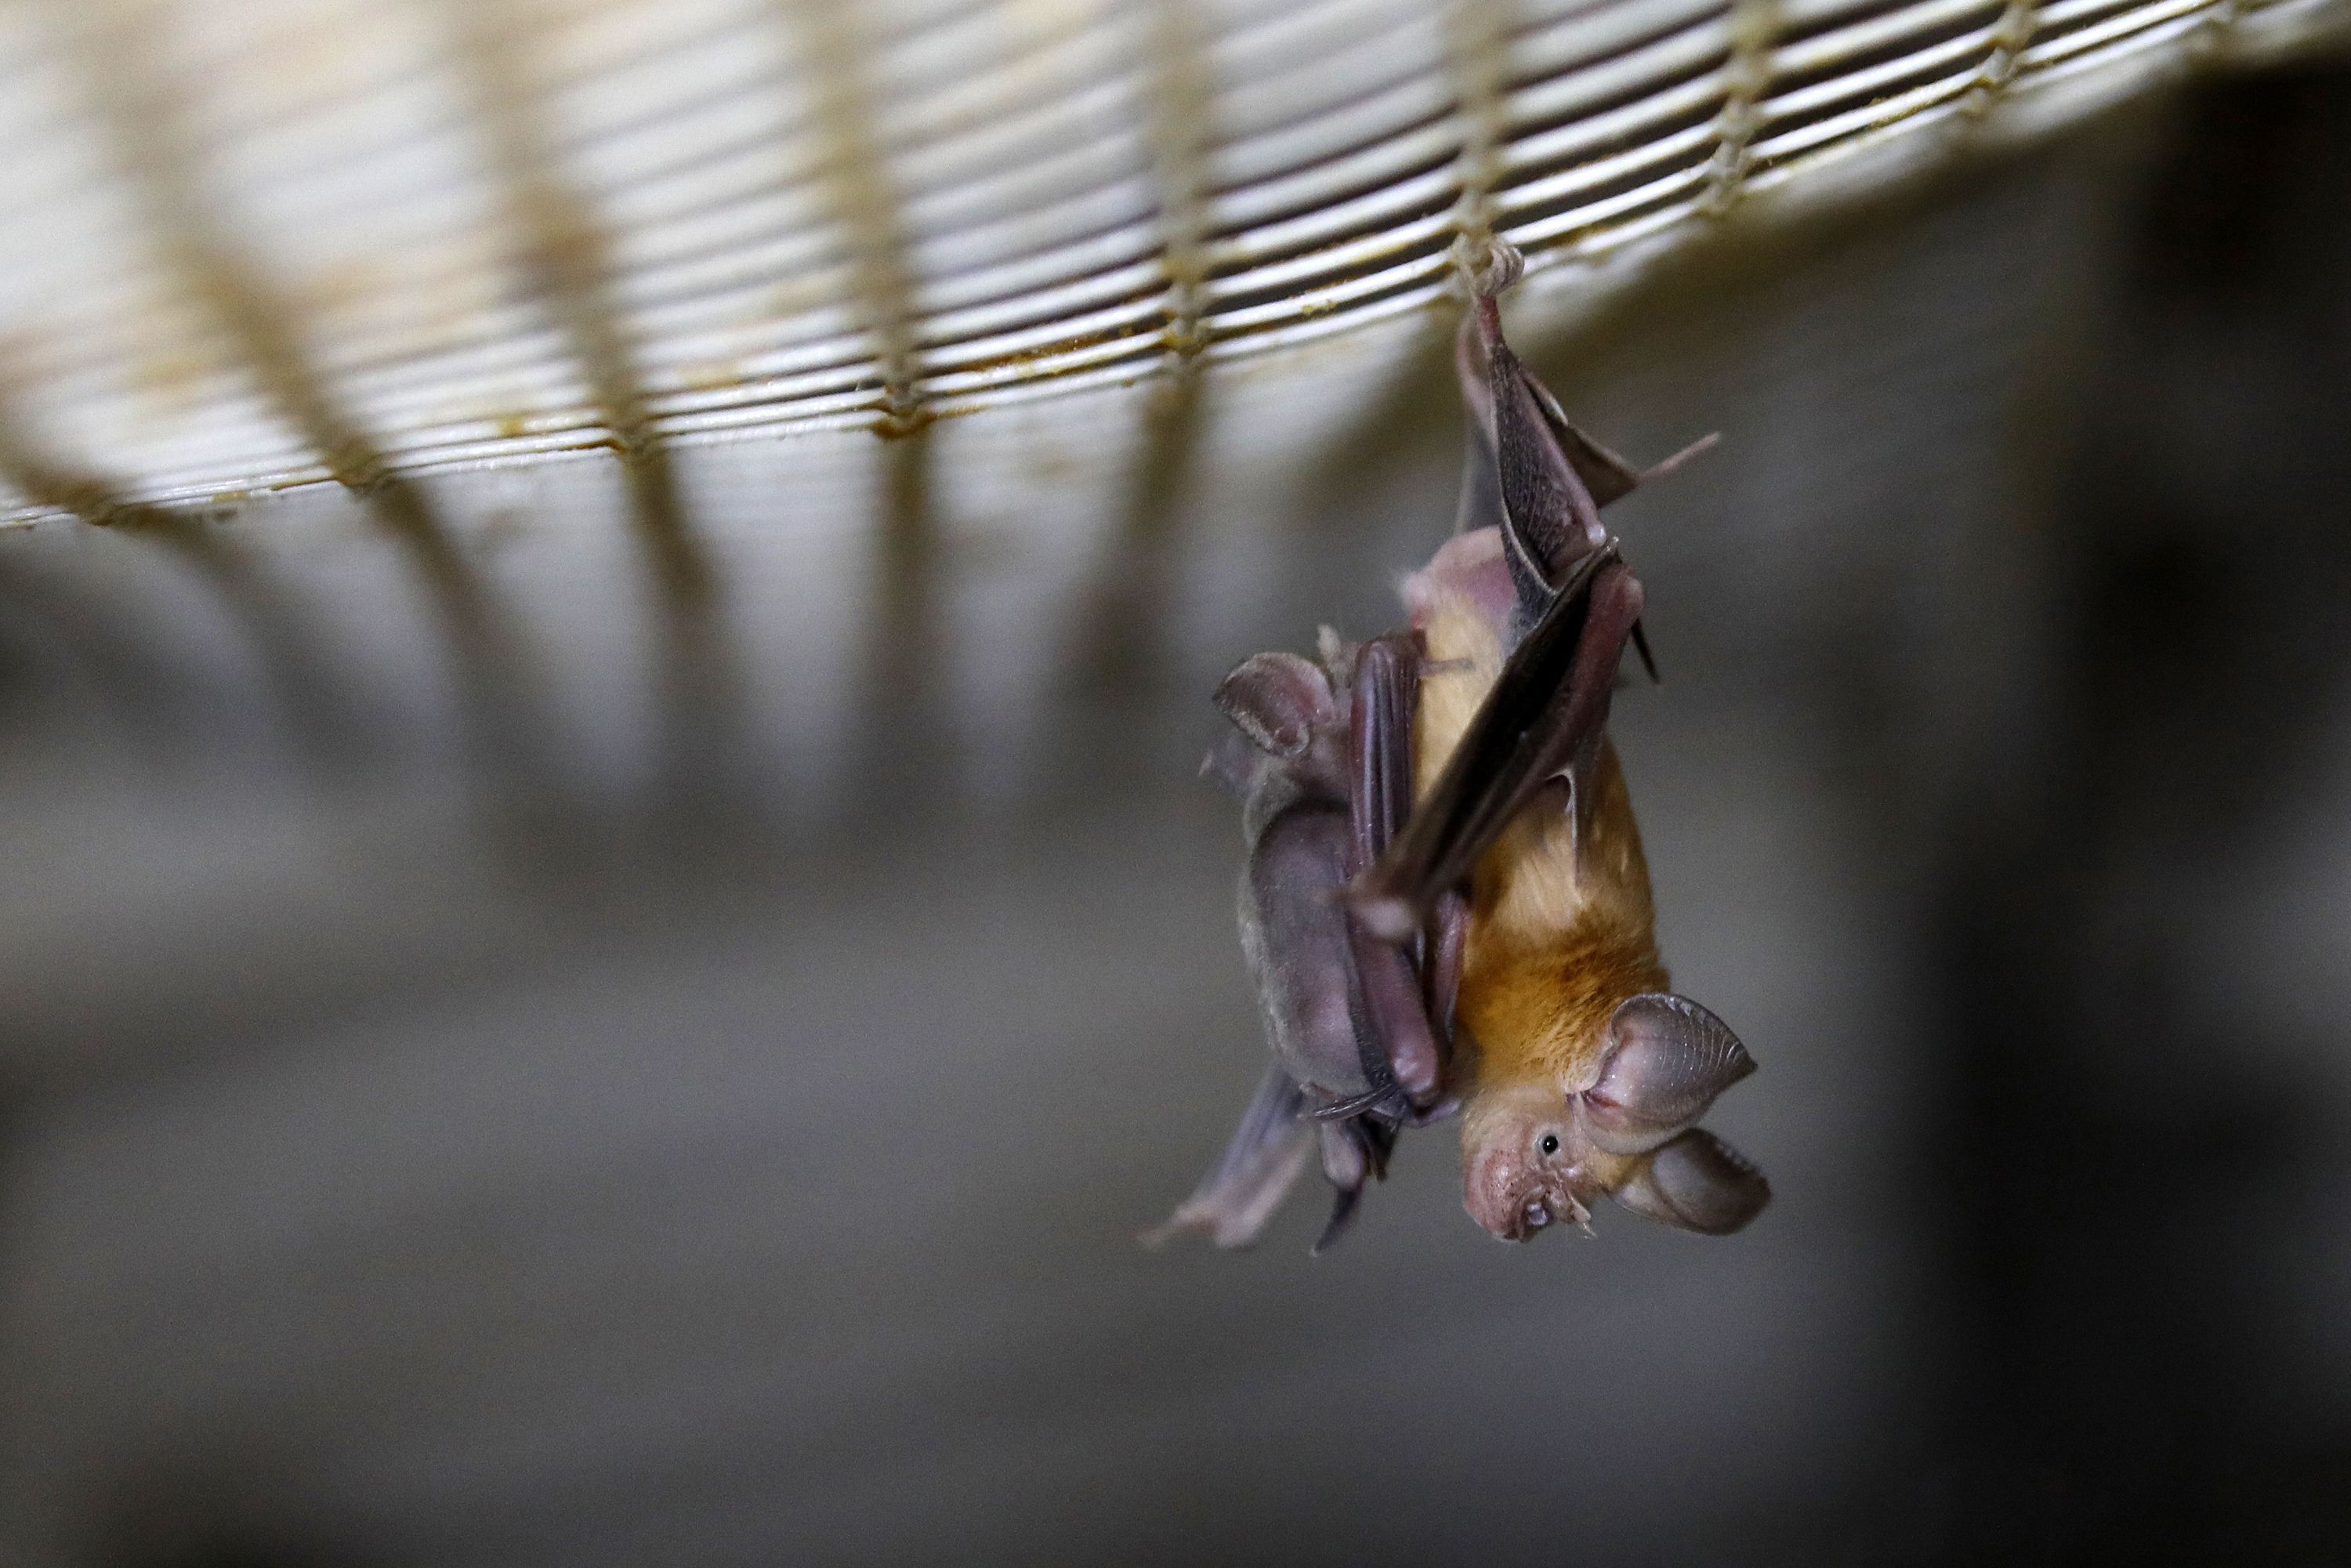 Bats Carry Many Viruses. So Why Don't They Get Sick?